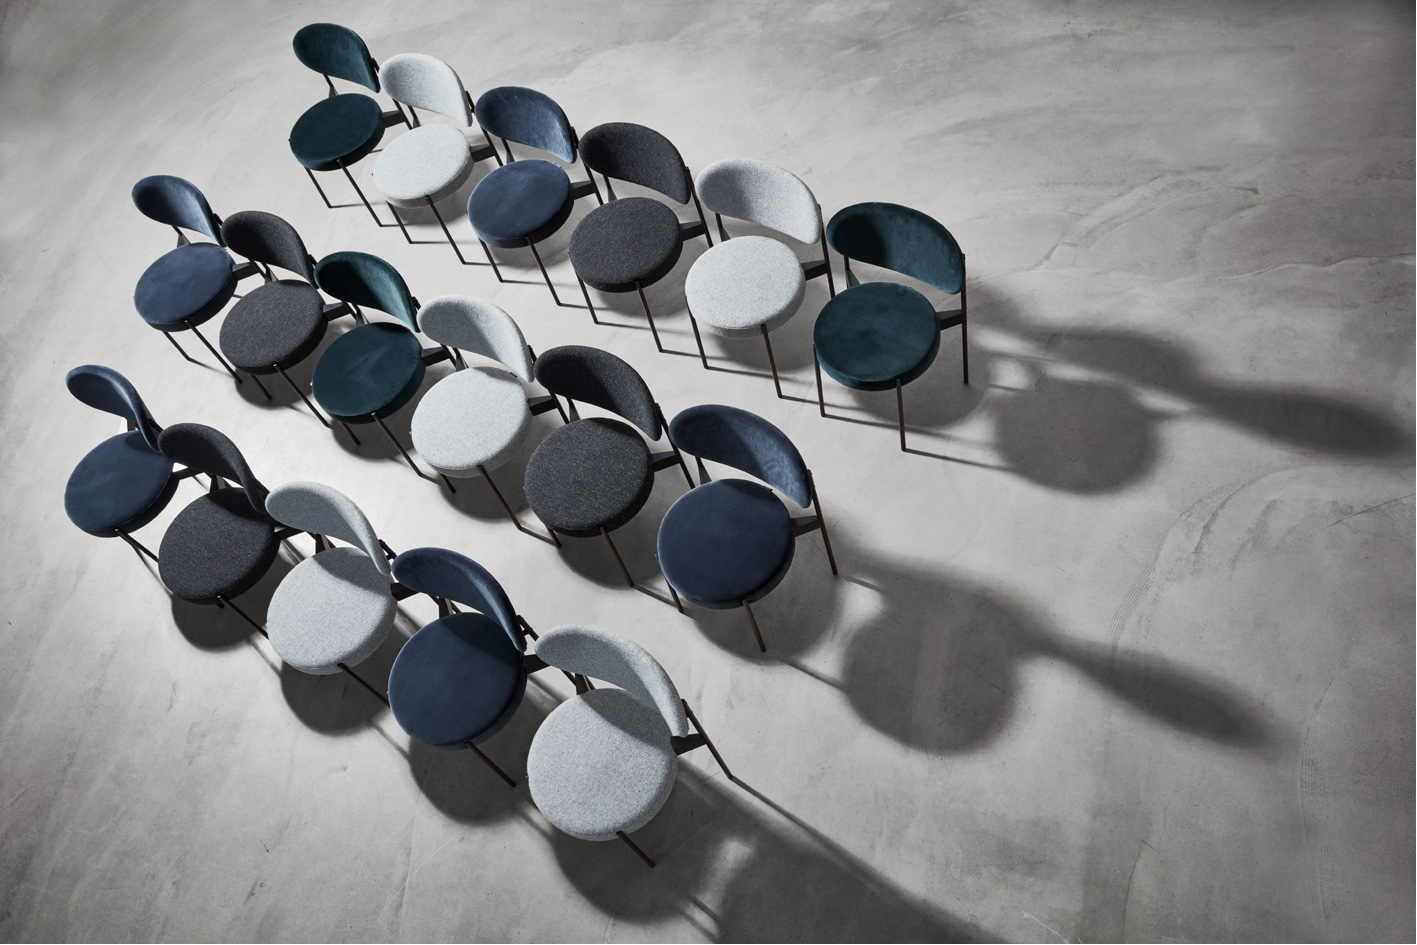 Series 430 dining chair. Designed by Verner Panton in 1967.